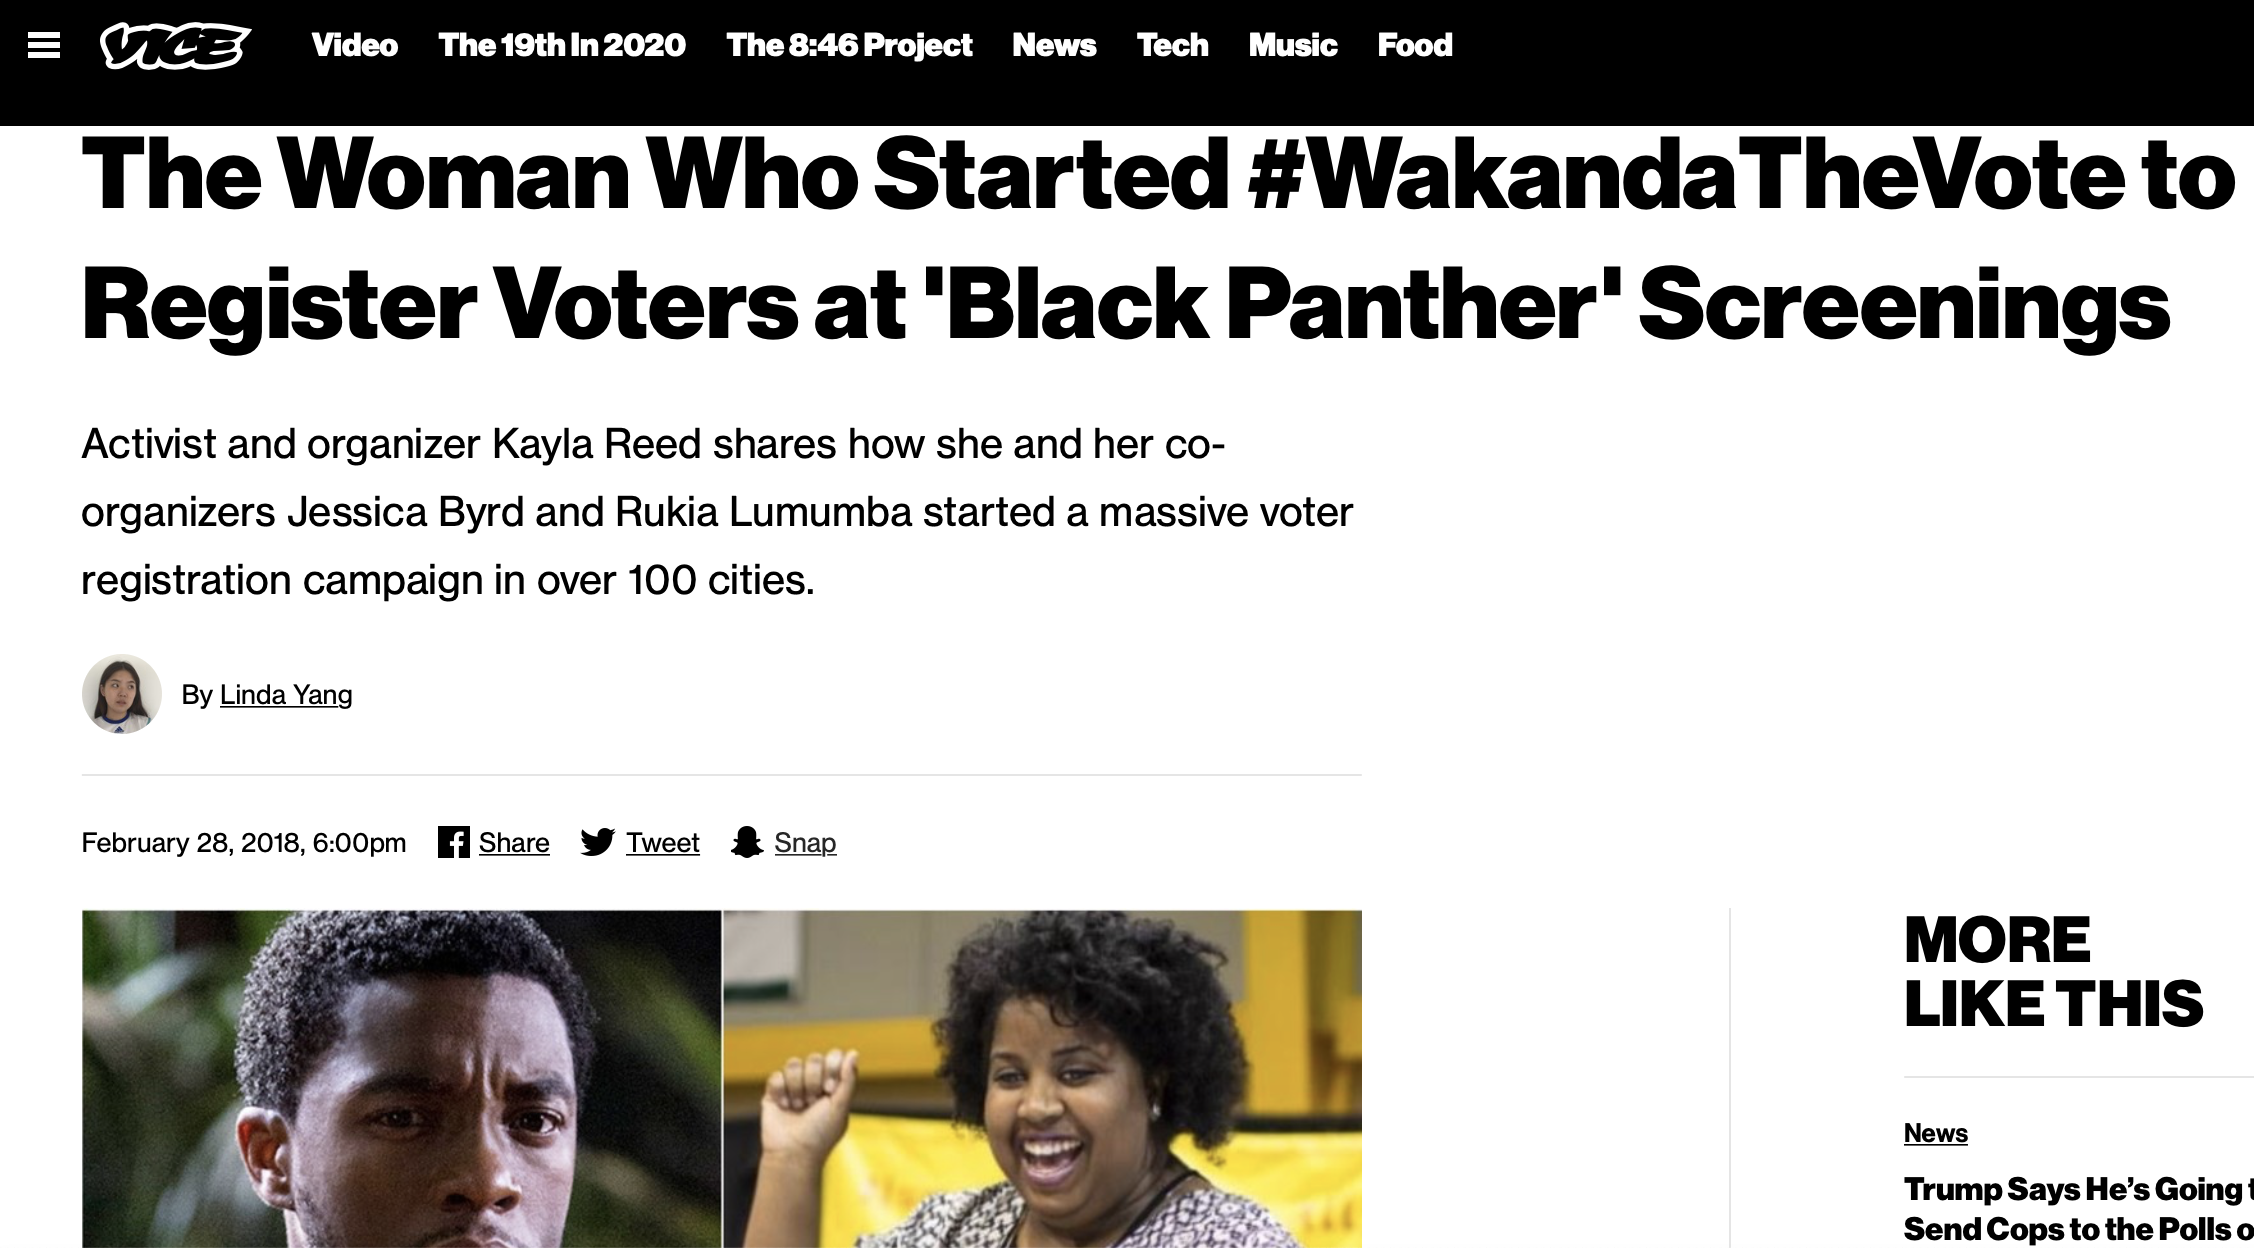 The Woman Who Started #WakandaTheVote to Register Voters at 'Black Panther' Screenings